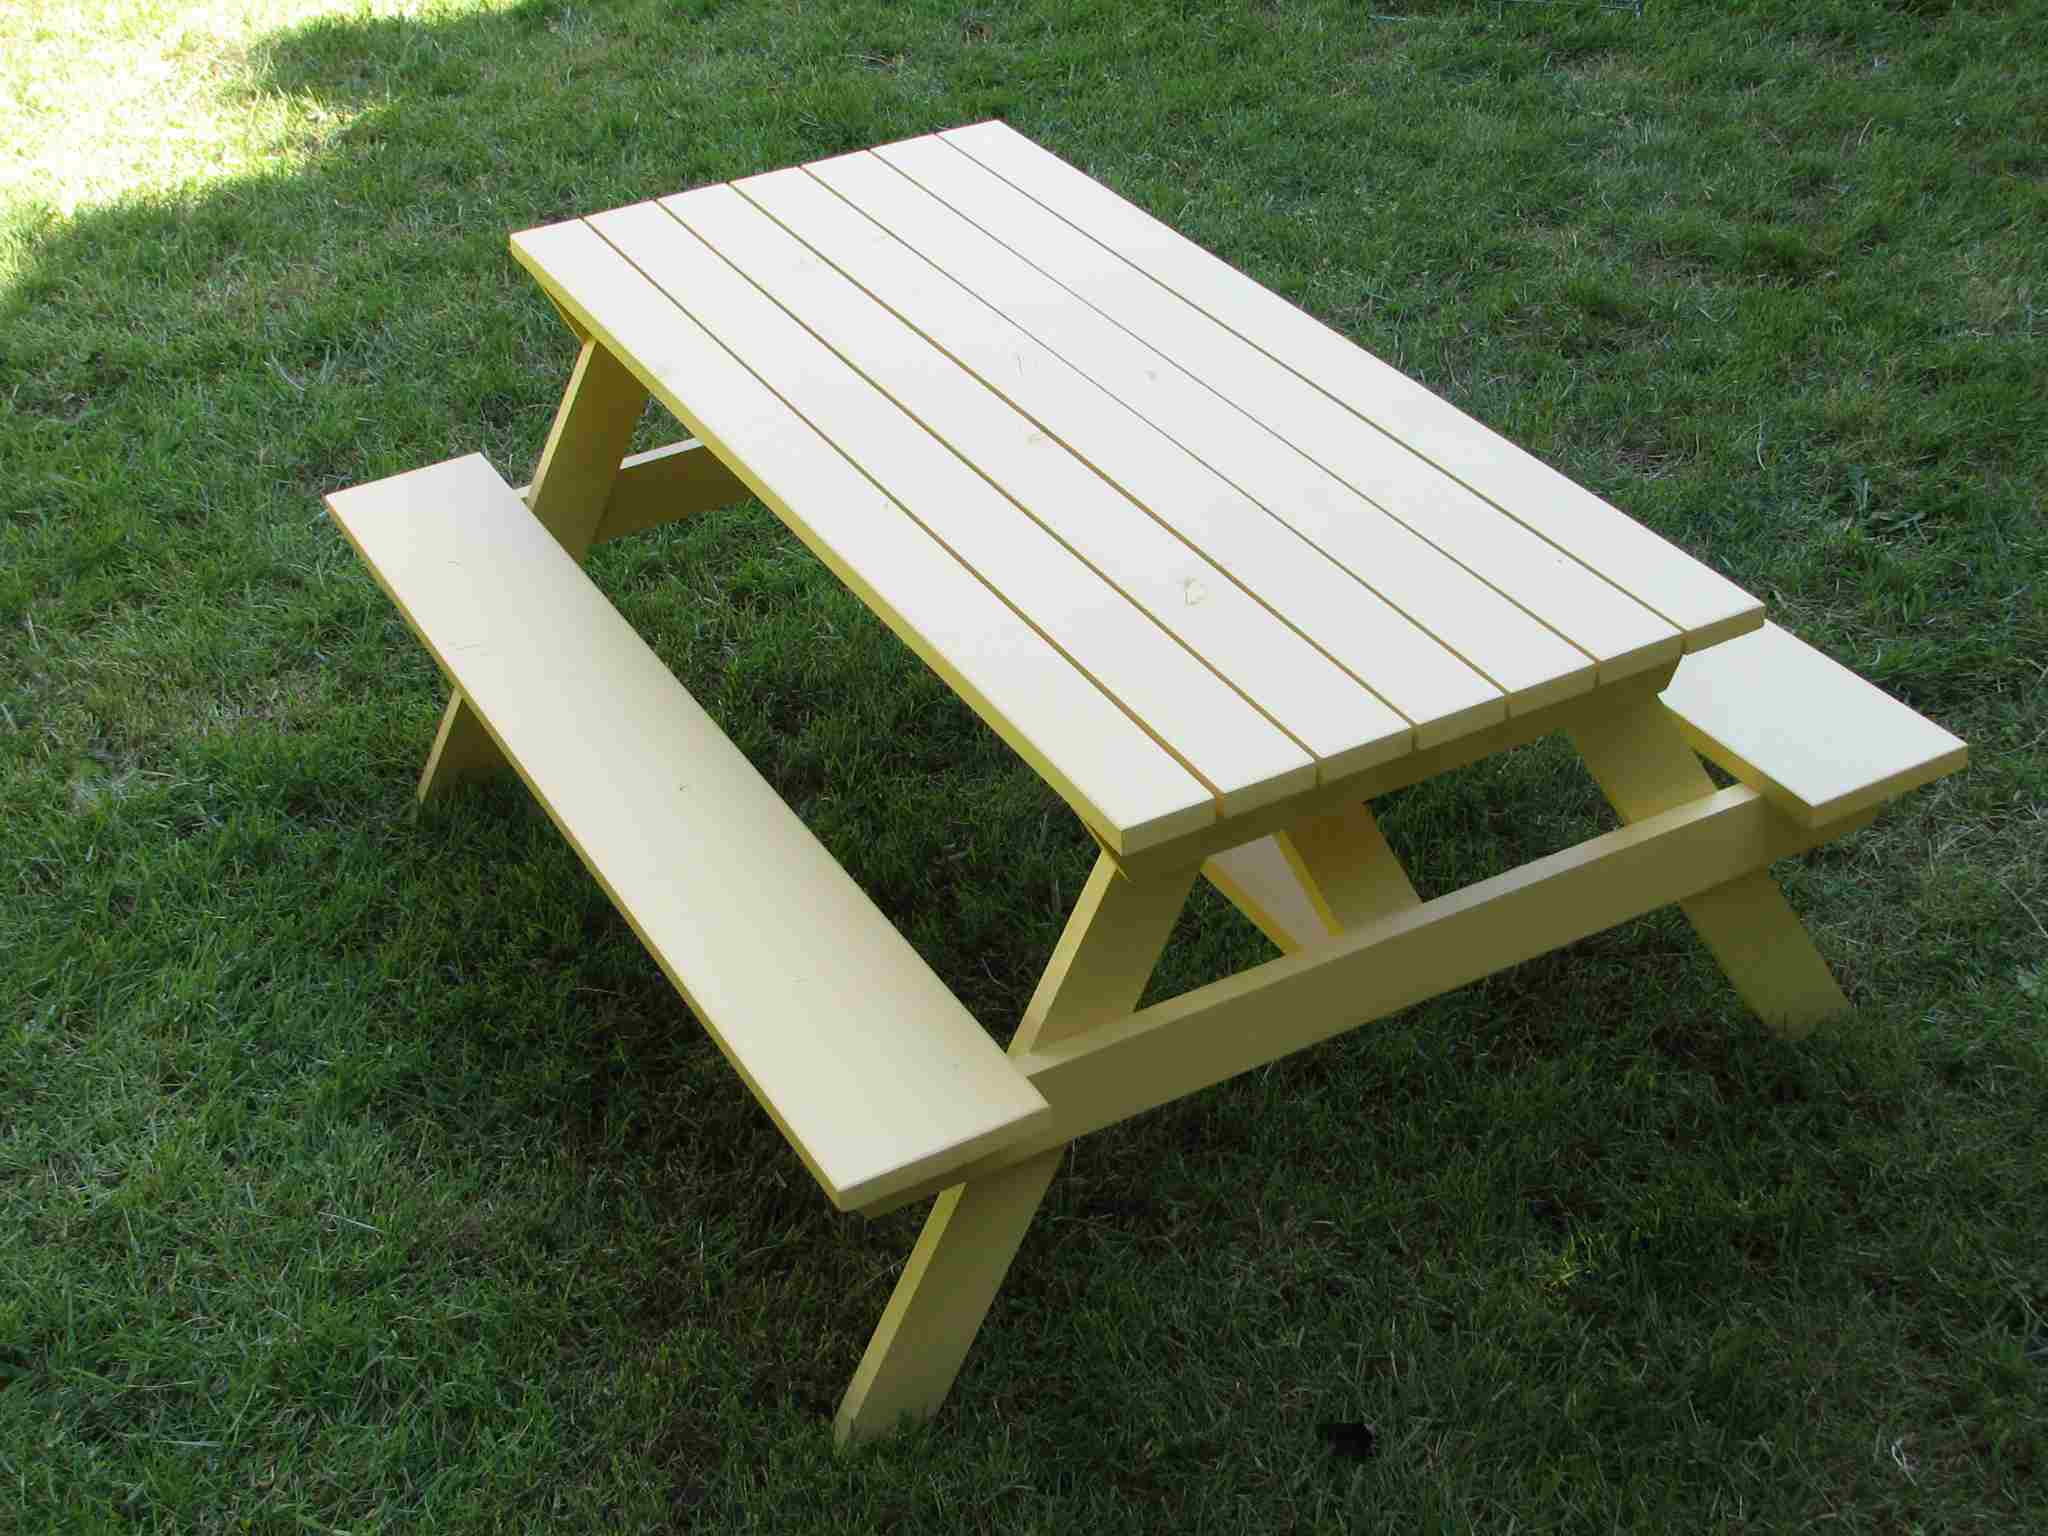 A Picnic Table For Preschoolers